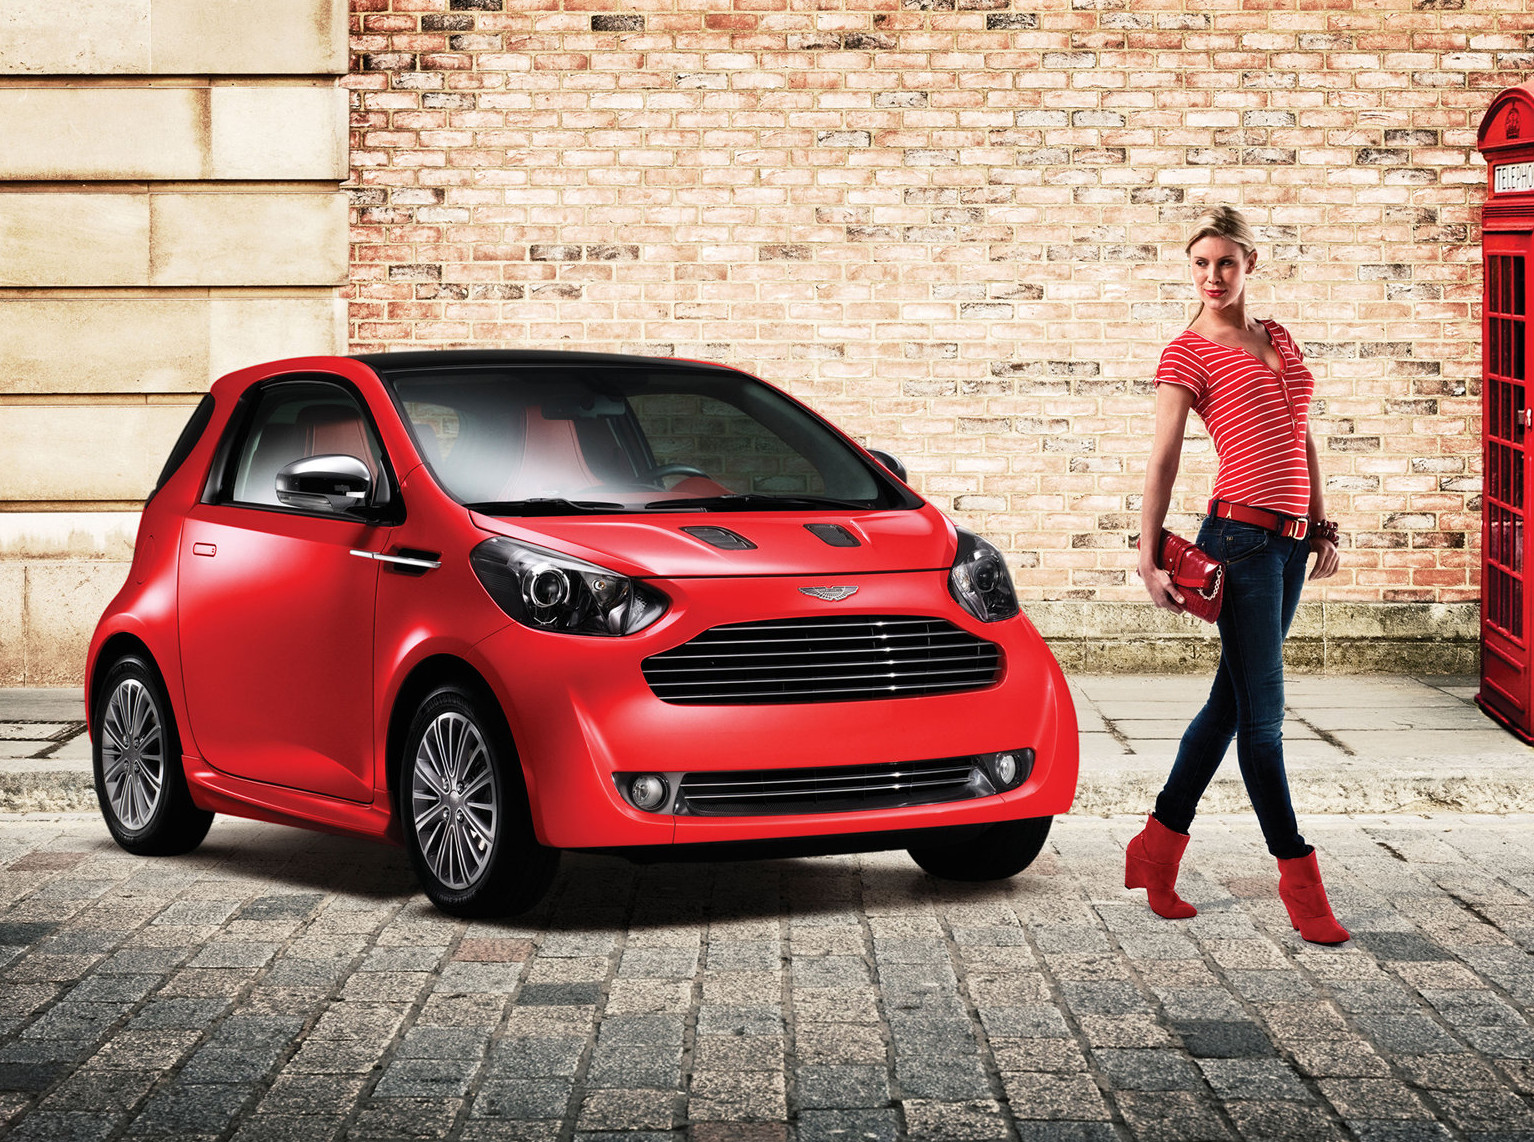 aston martin cygnet to start from $49,595 - autoevolution